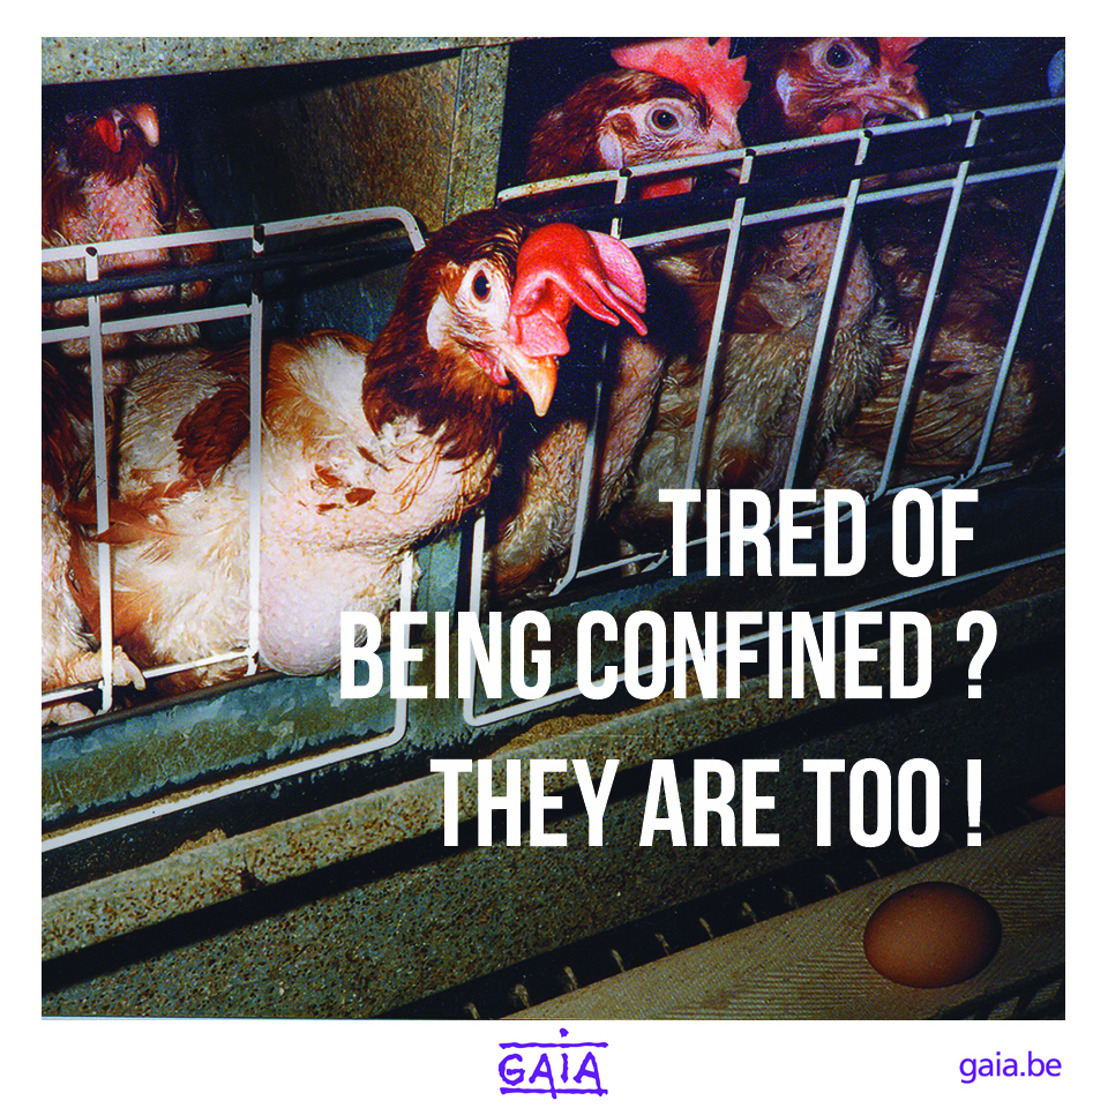 """NEW CAMPAIGN: """"Tired of being confined? They are too!"""""""